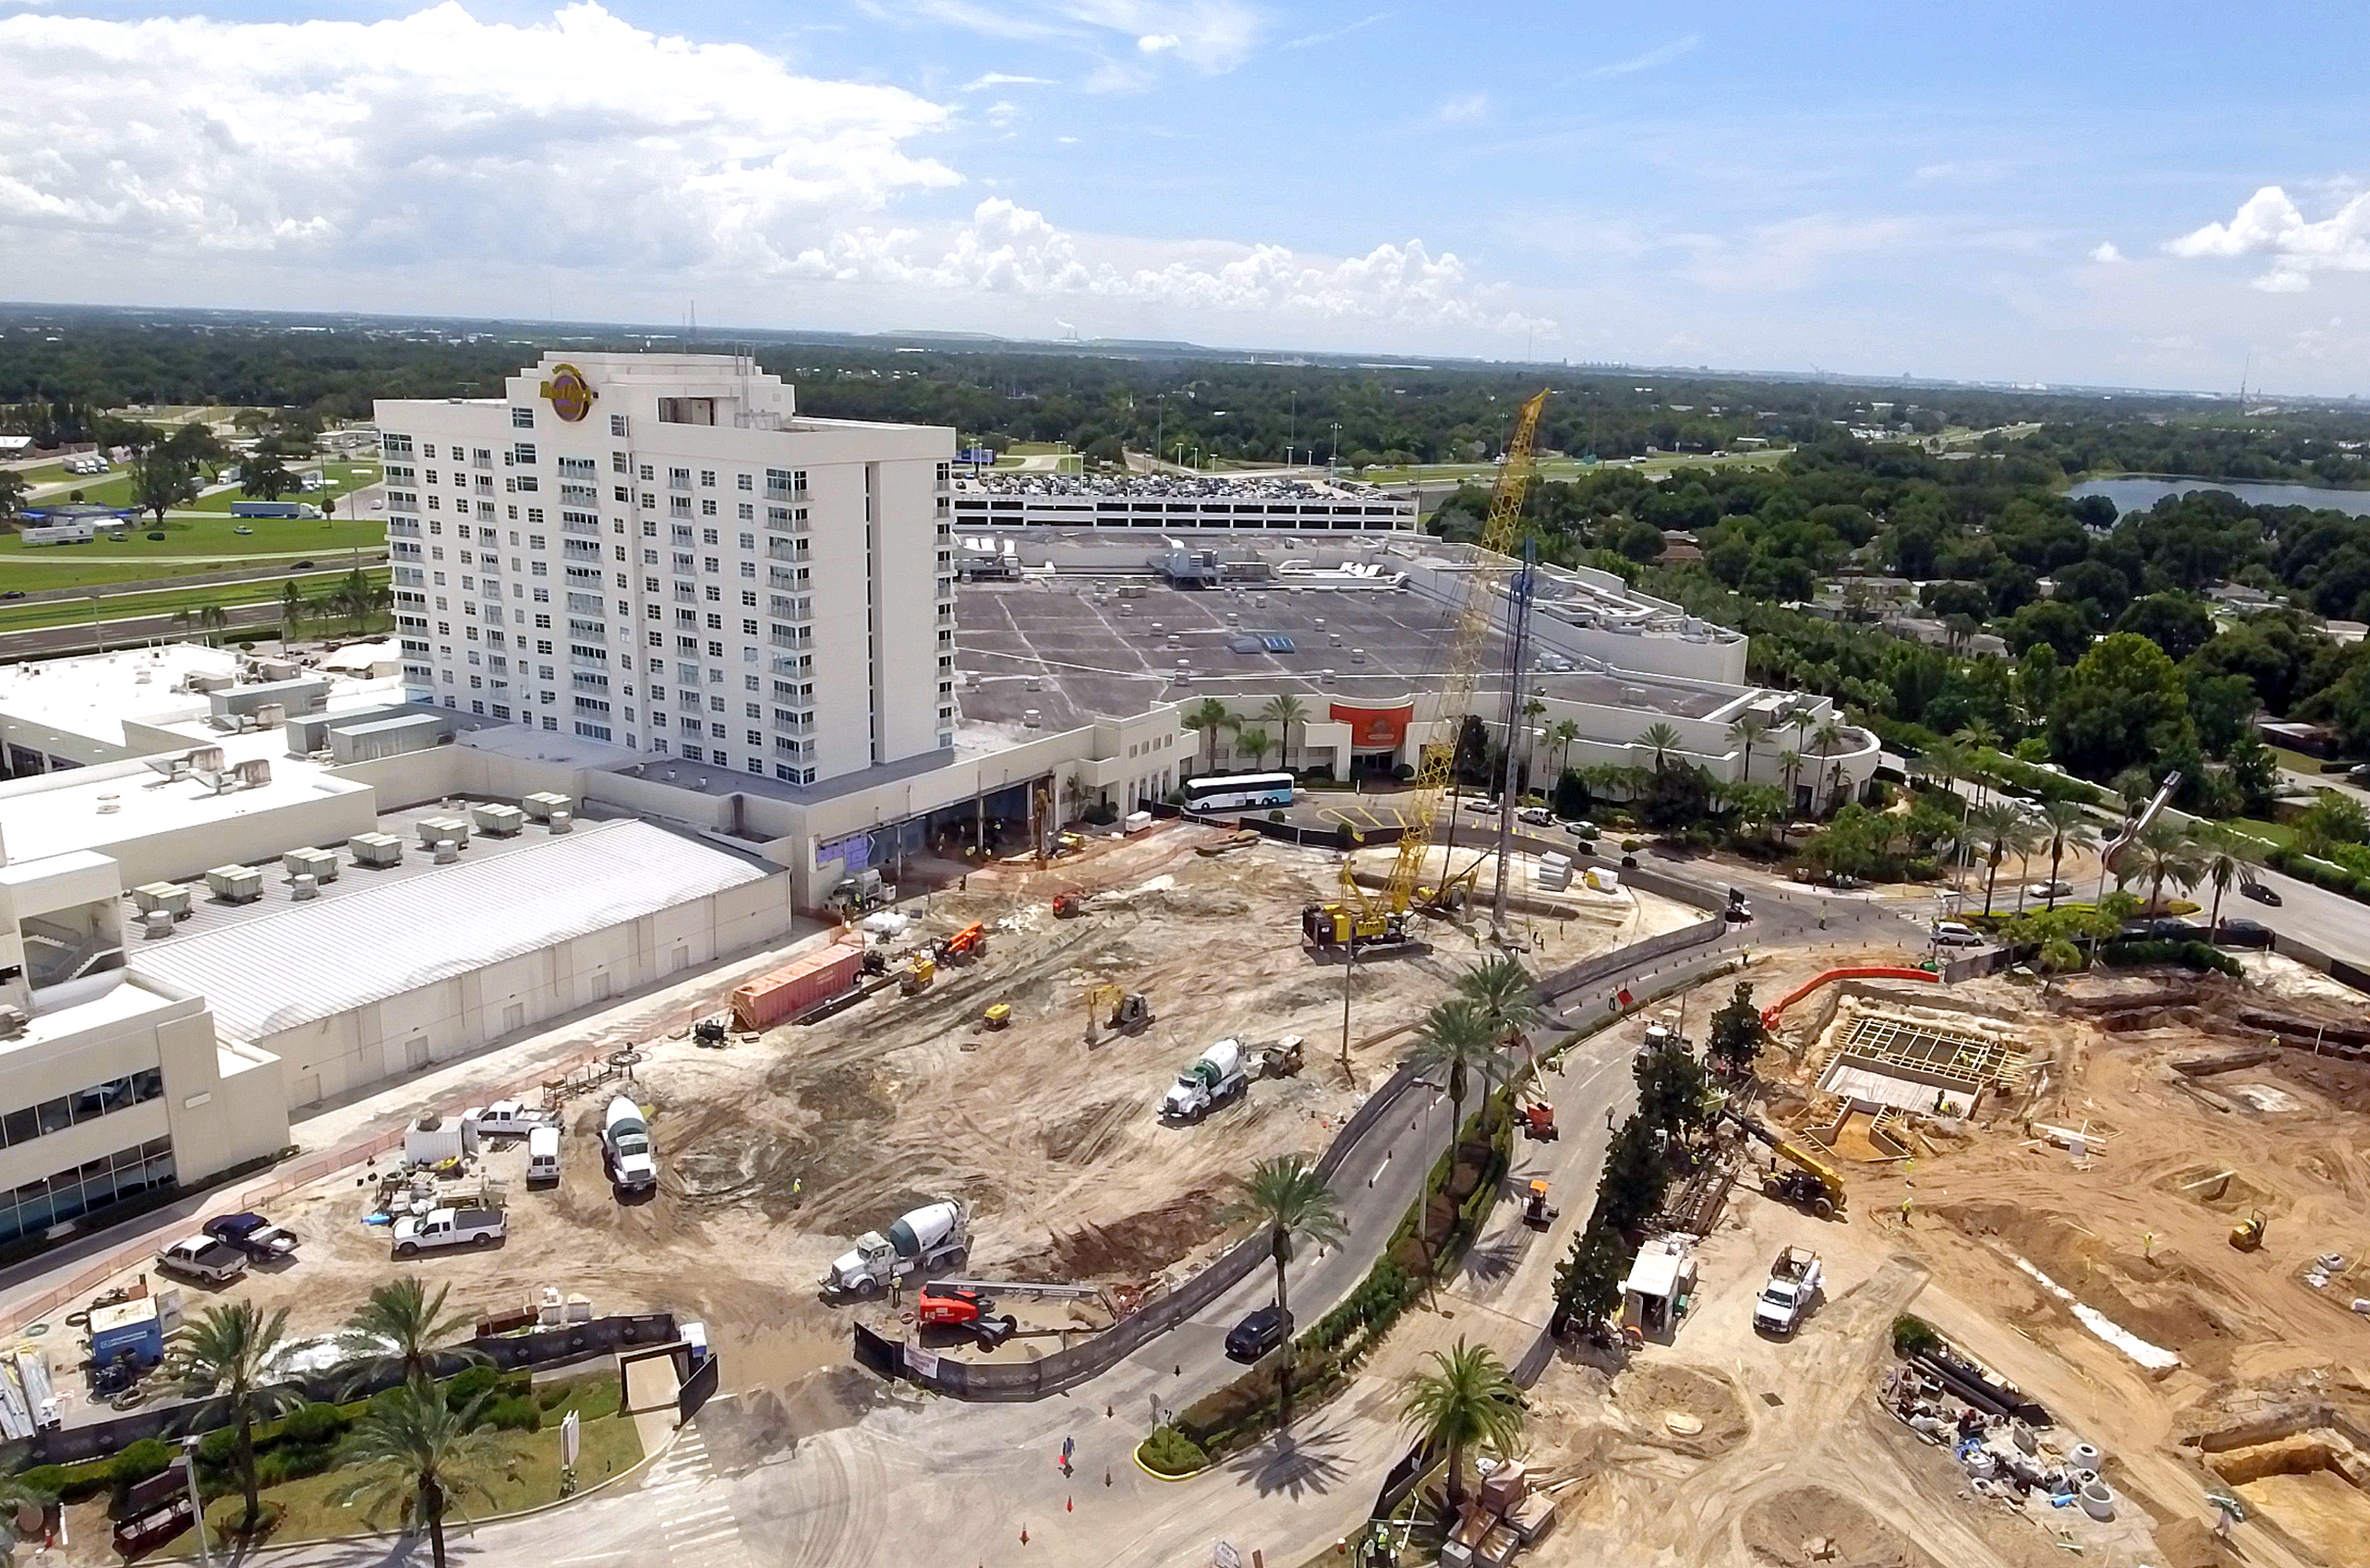 The view from a Seminole Media Productions drone shows the construction project underway at the Seminole Hard Rock Hotel & Casino Tampa. (Martin Ebenhack photo)